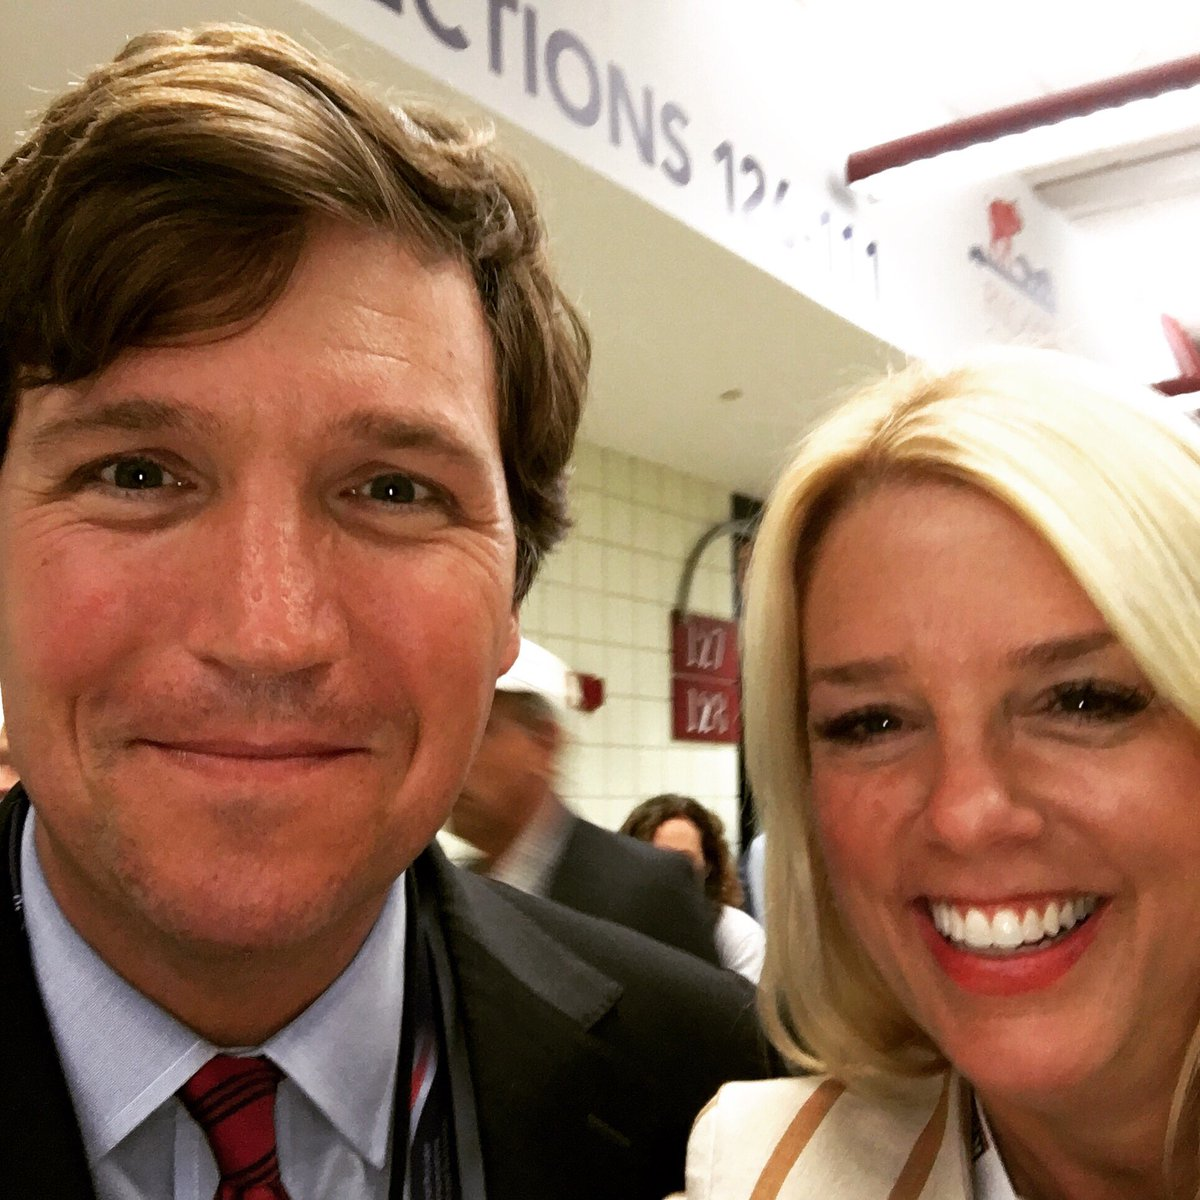 Gotta love @TuckerCarlson! #RNCinCLE https://t.co/4lKLWBFuPR